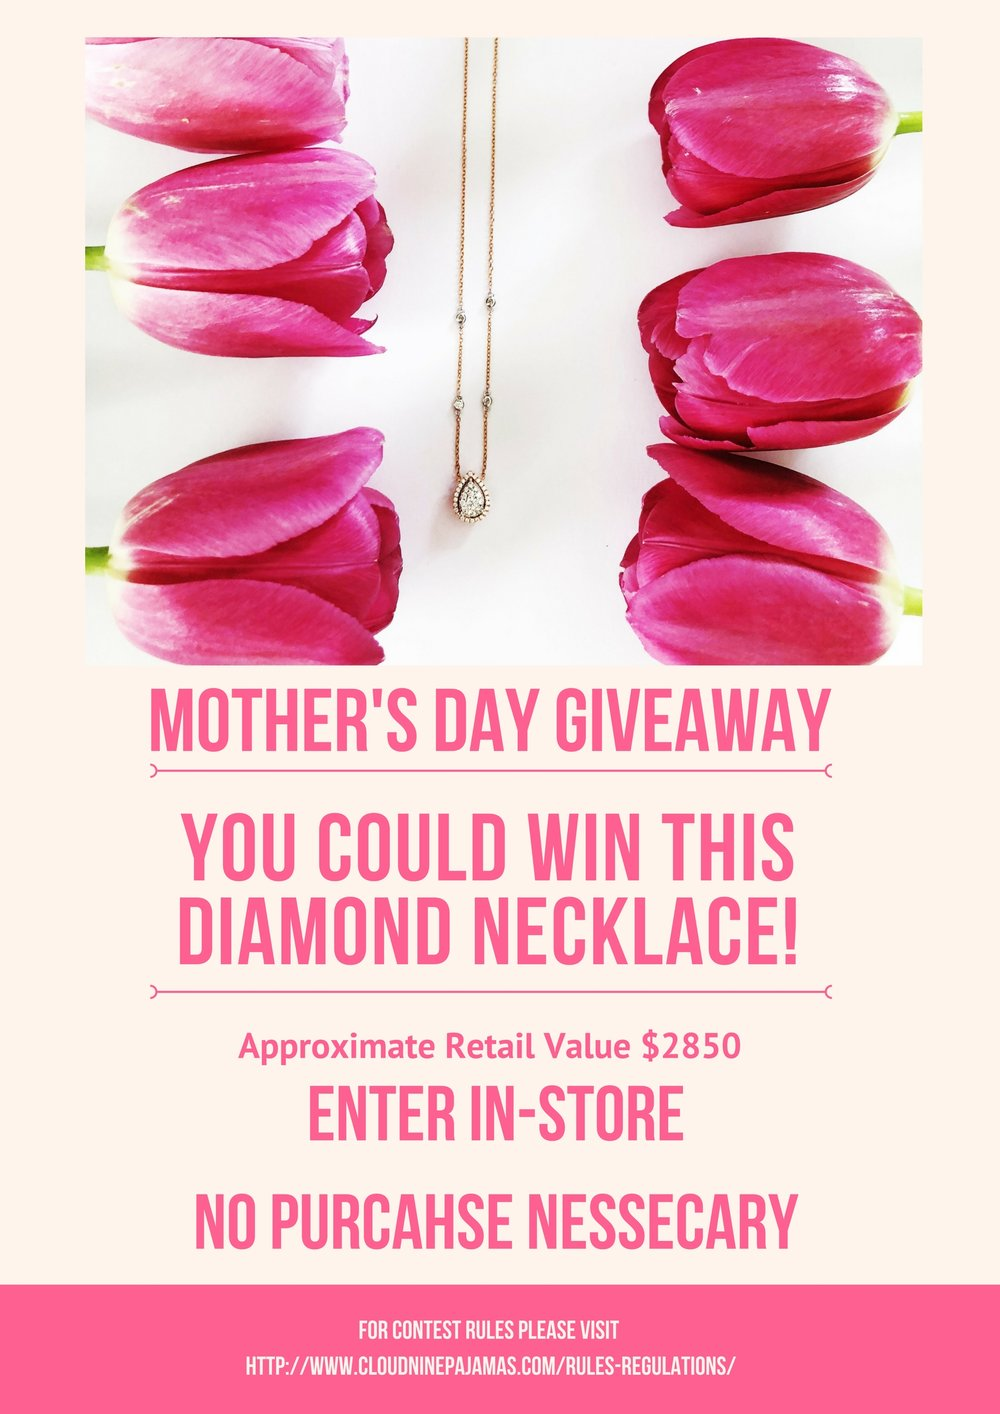 You Could Win This Diamond Necklace!-9.jpg